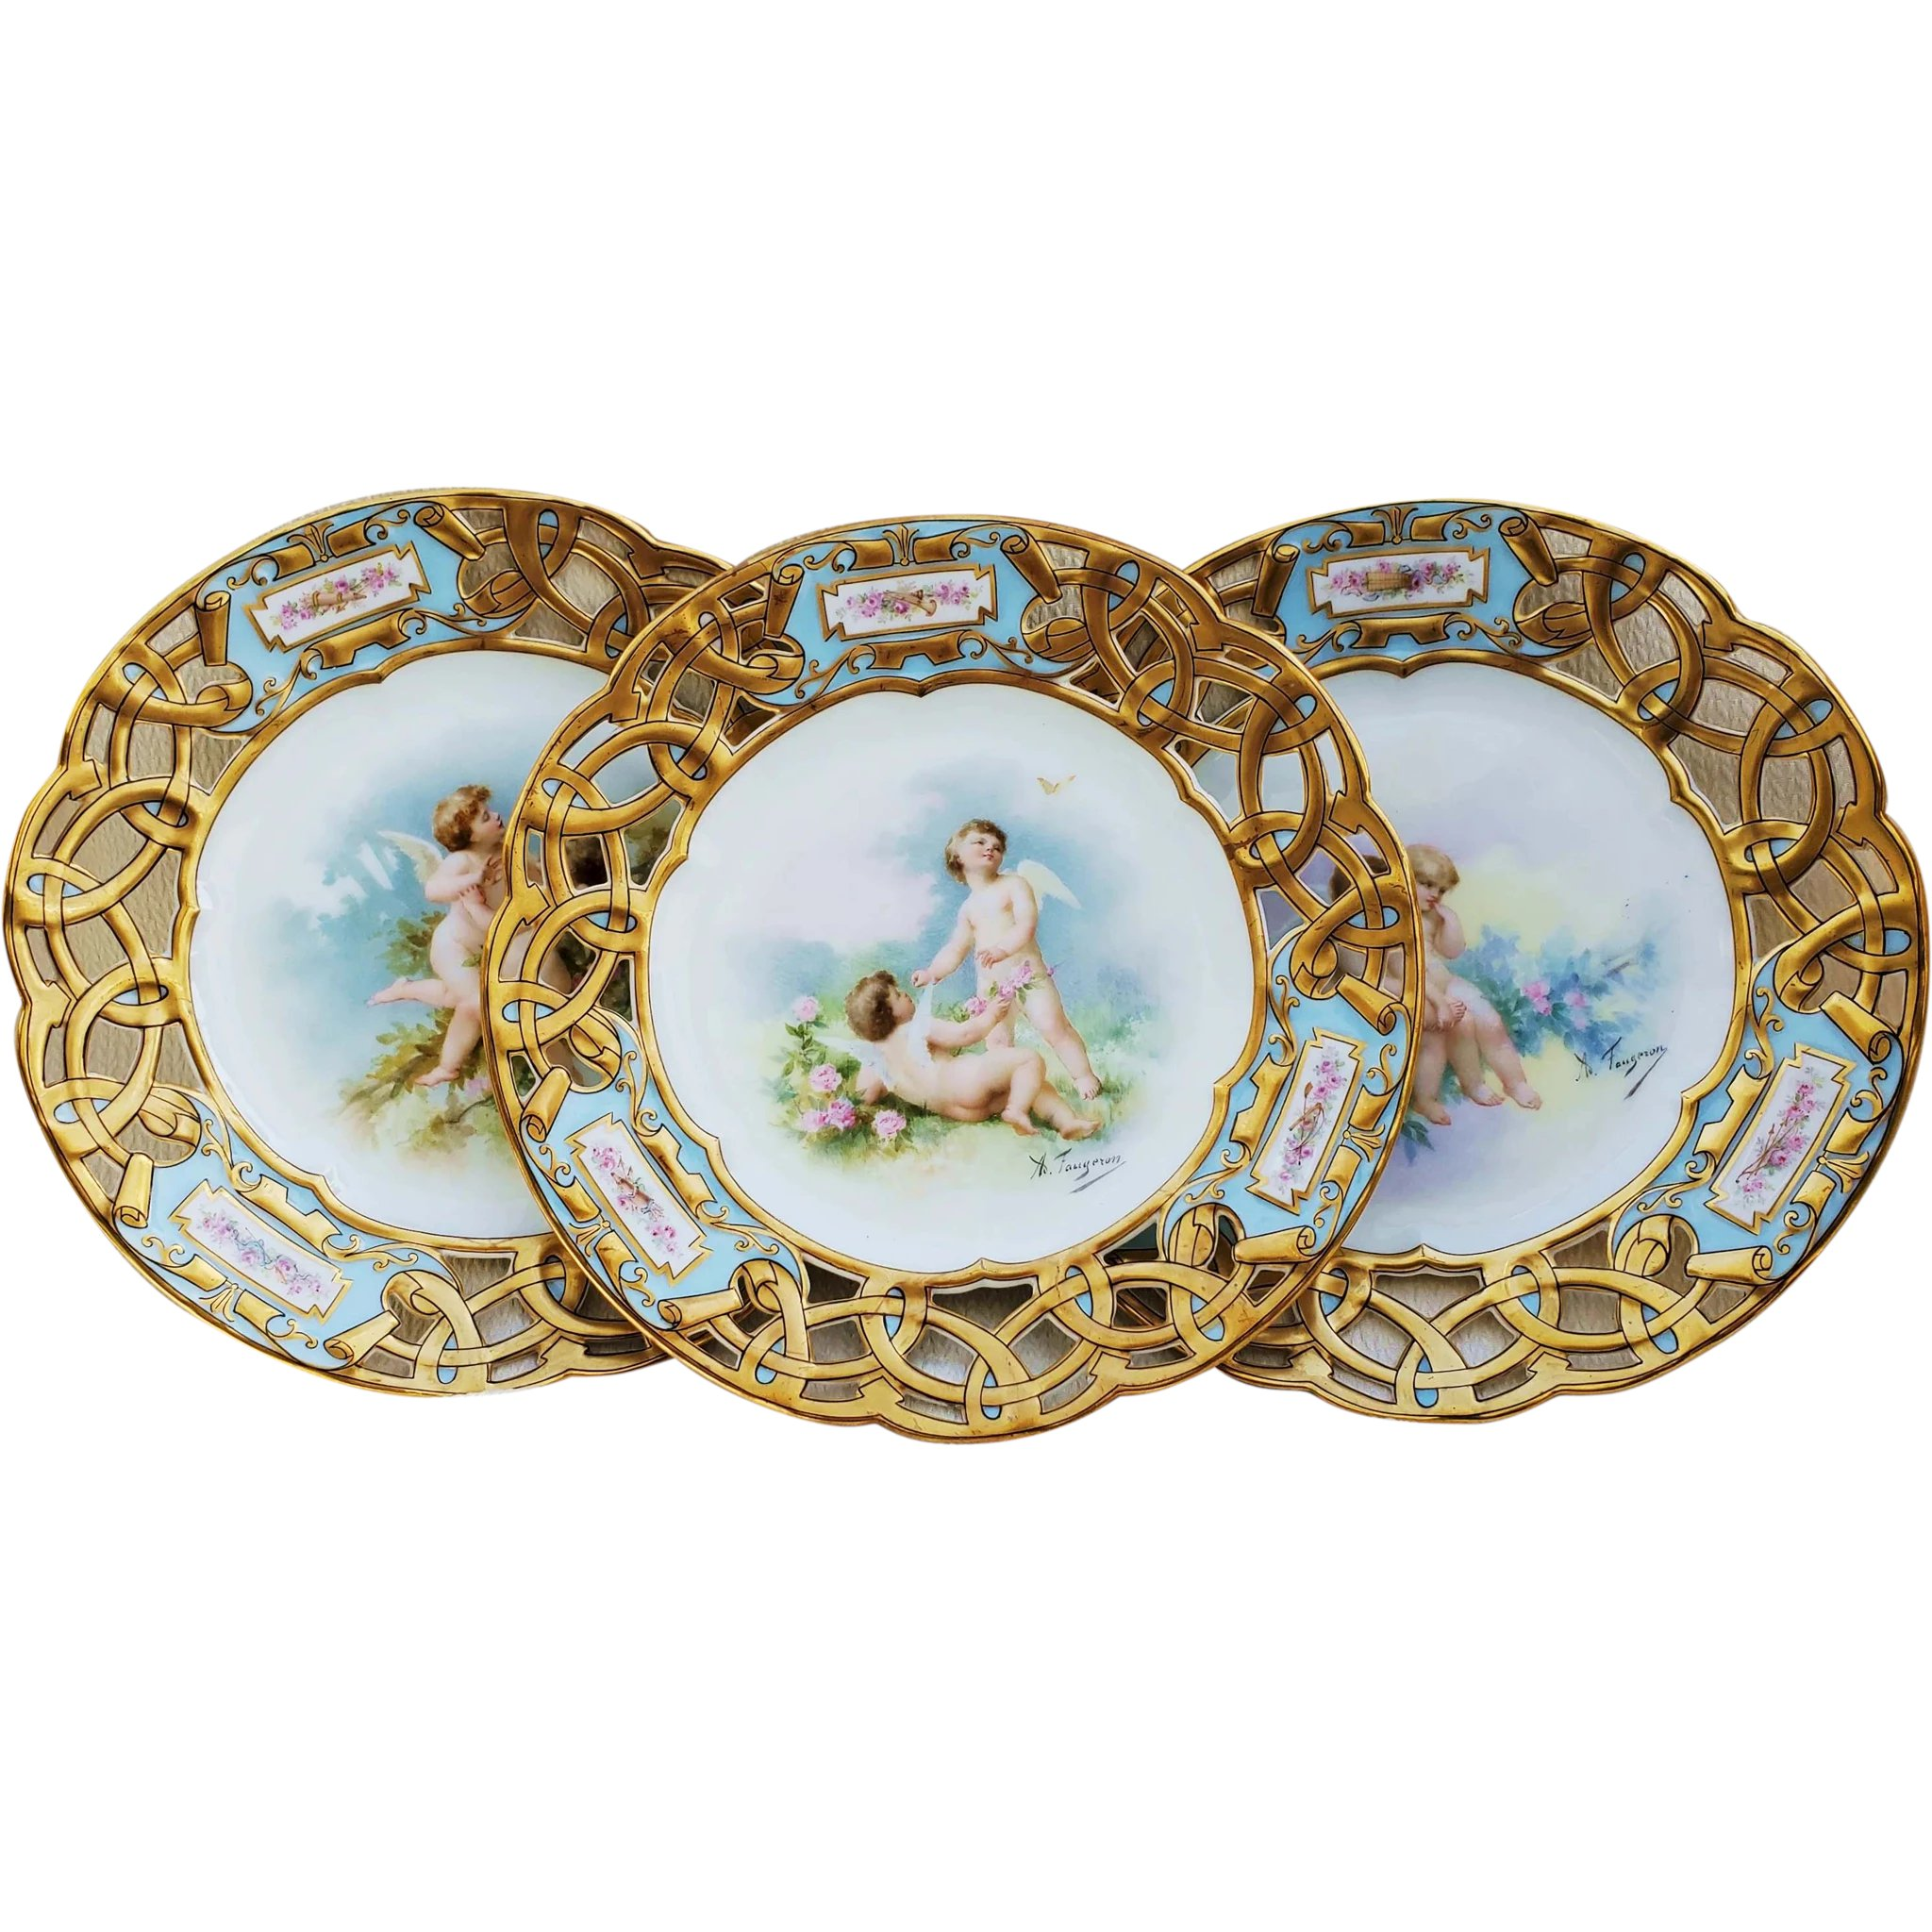 fabulous vintage limoges france pre 1900 hand painted putti s sitting in a rose garden reticulated scenic 9 plate by listed artist adolphe